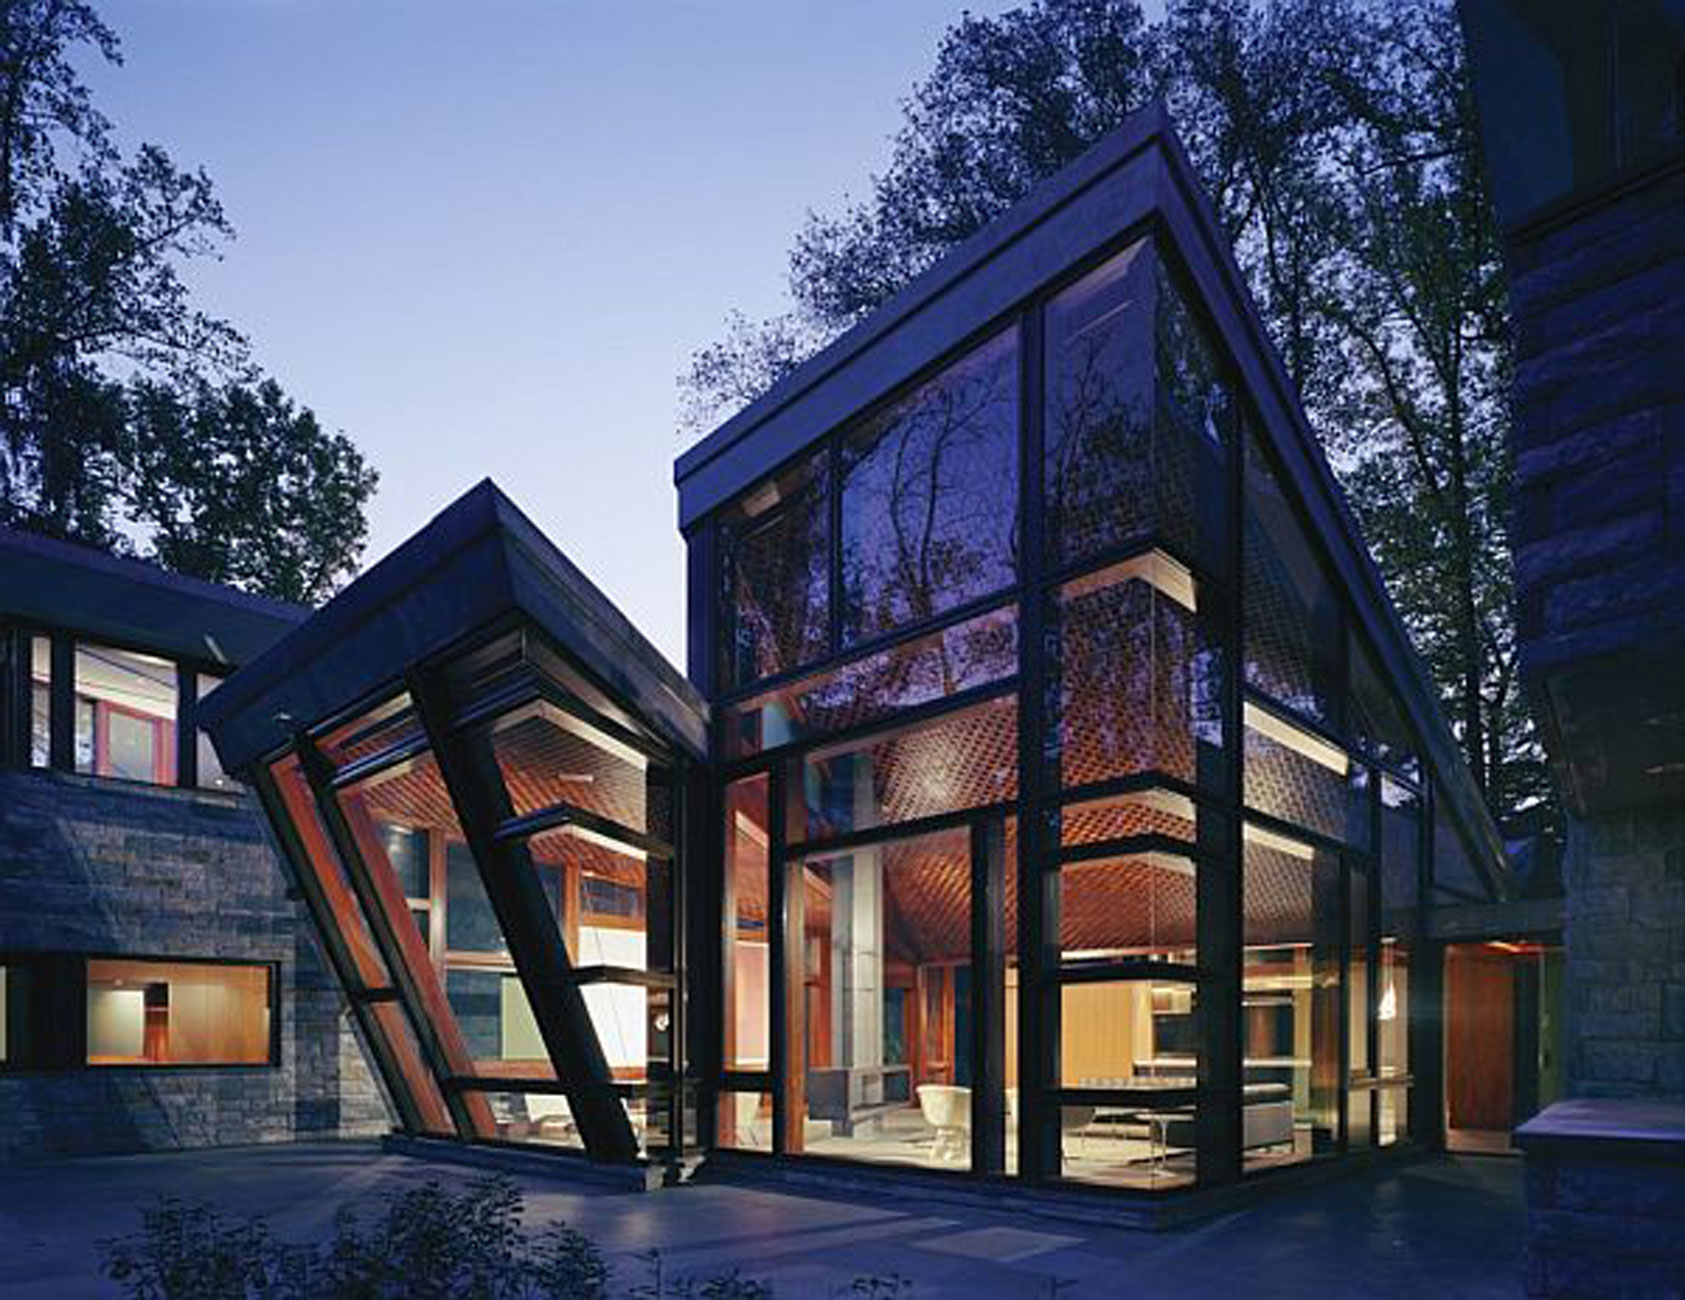 Sunday evening art gallery blog glass houses humoring for Architectural homes